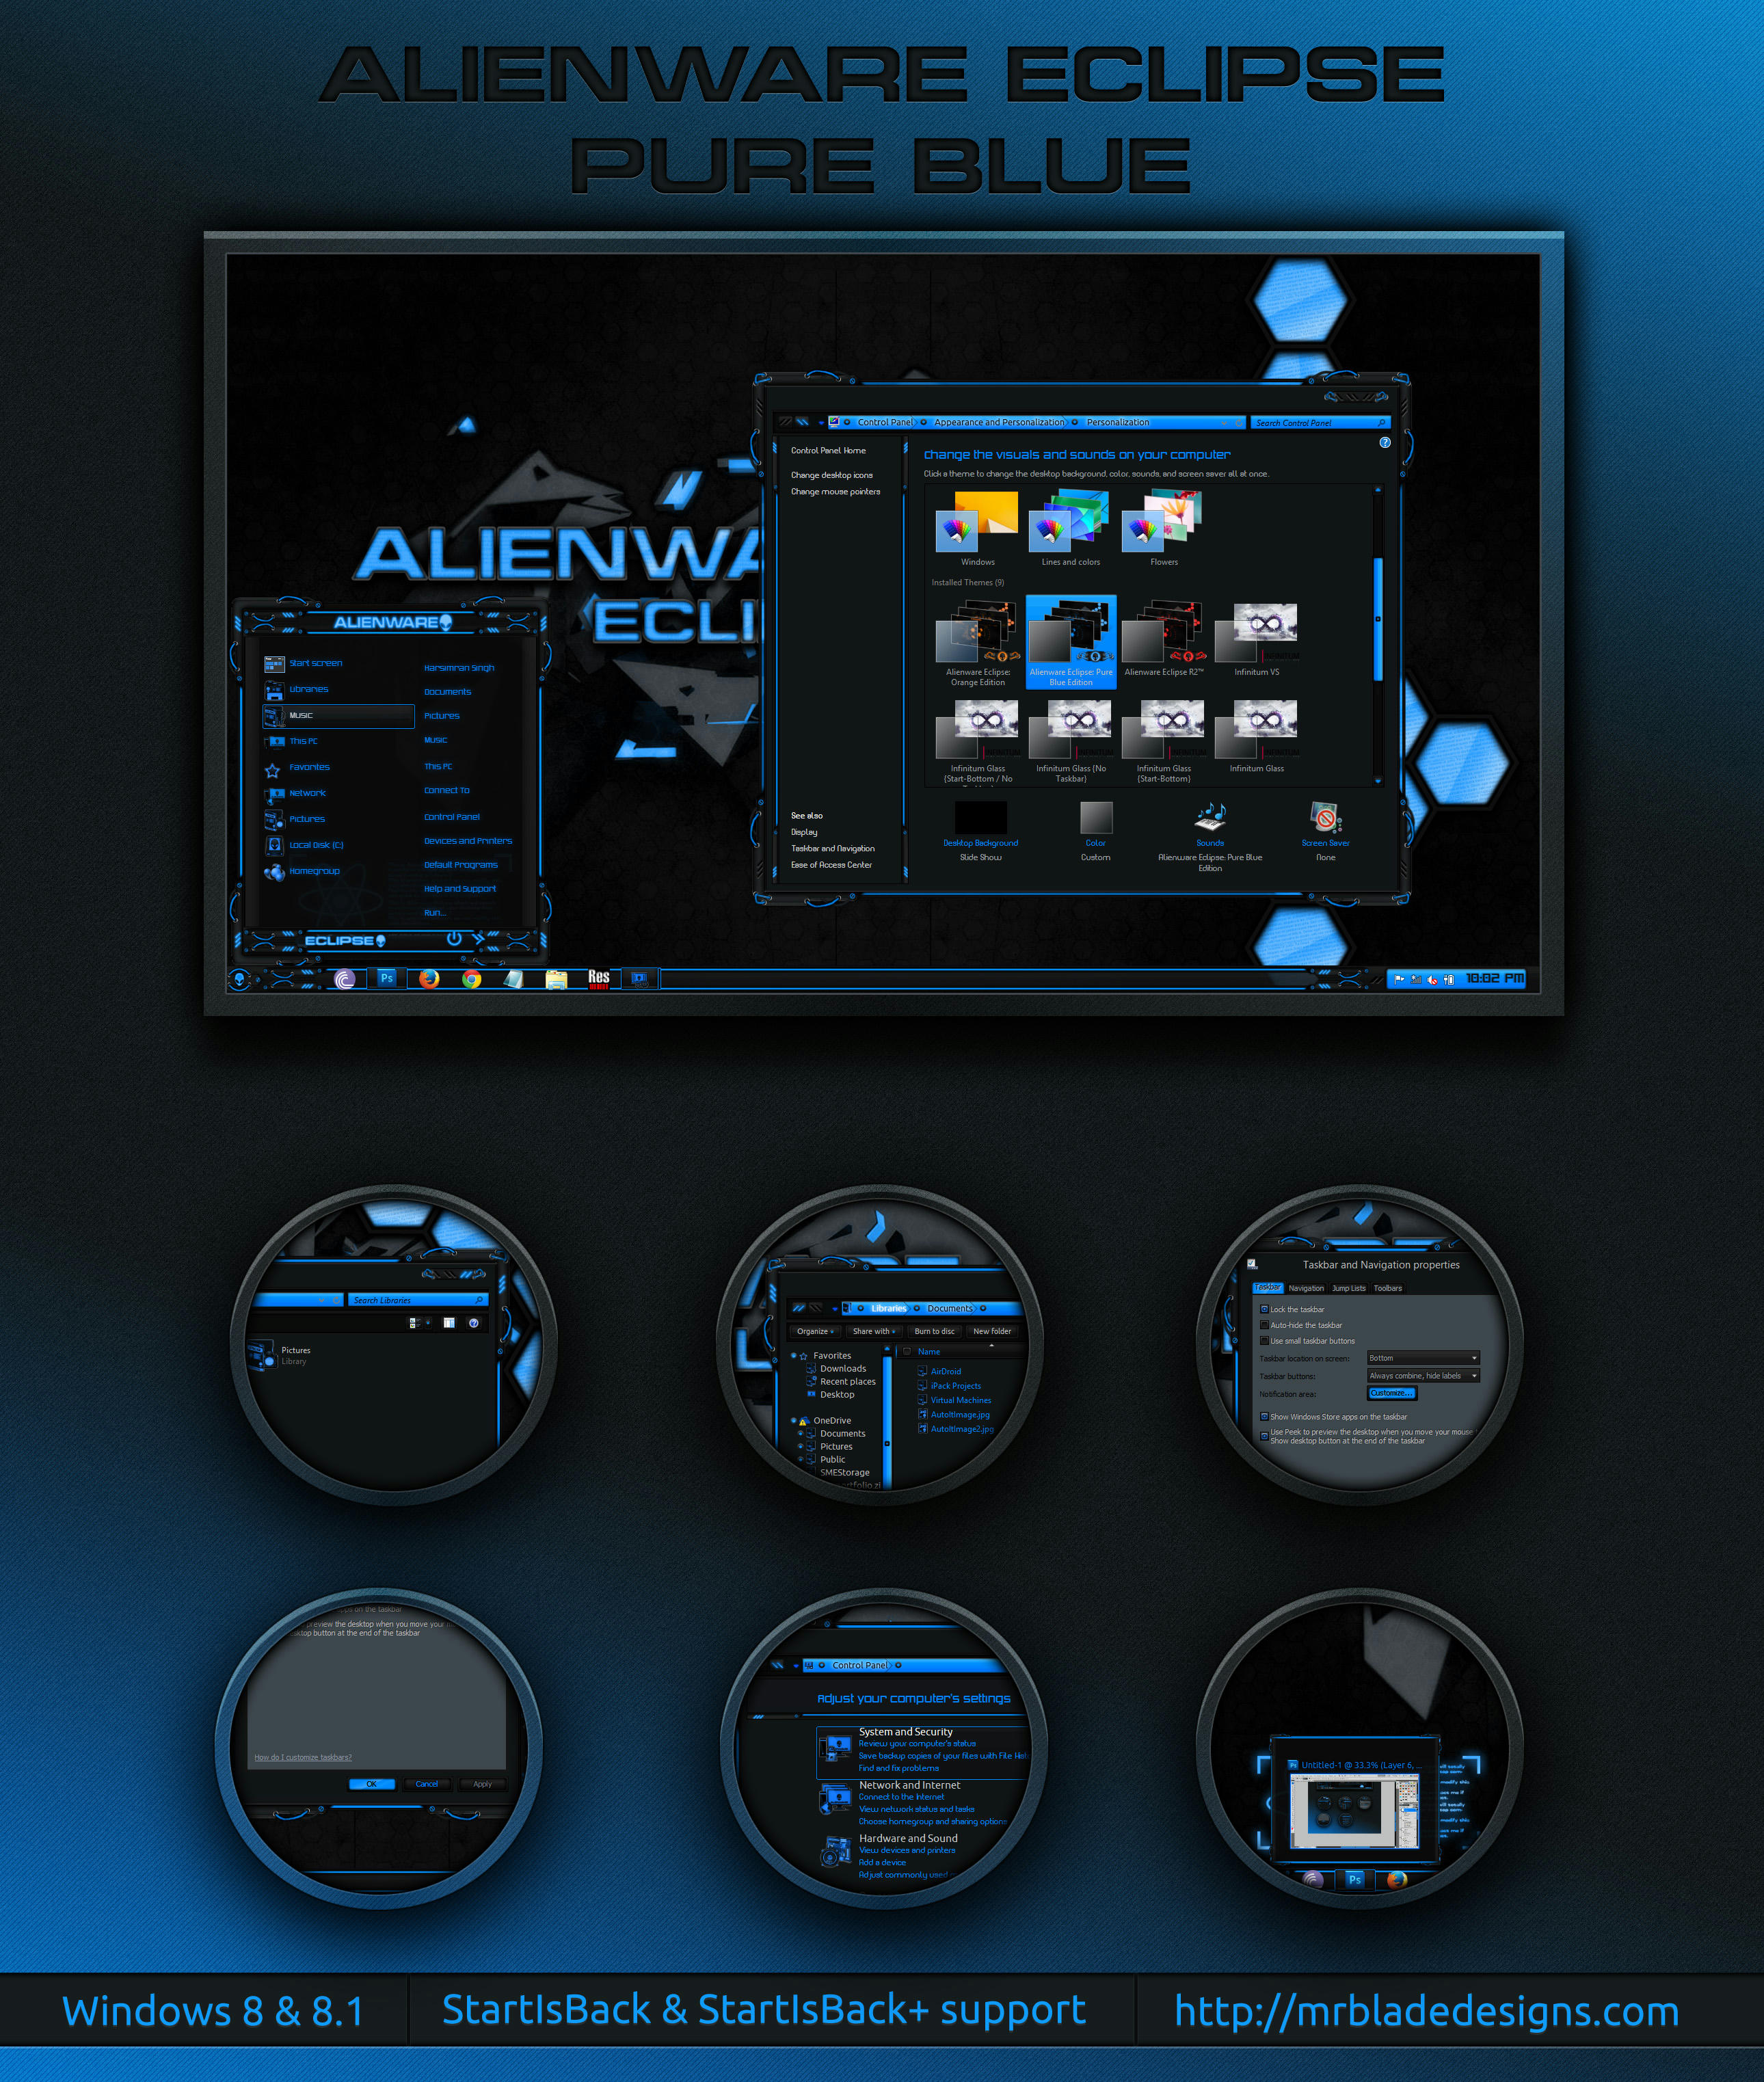 Alienware Eclipse Pure Blue